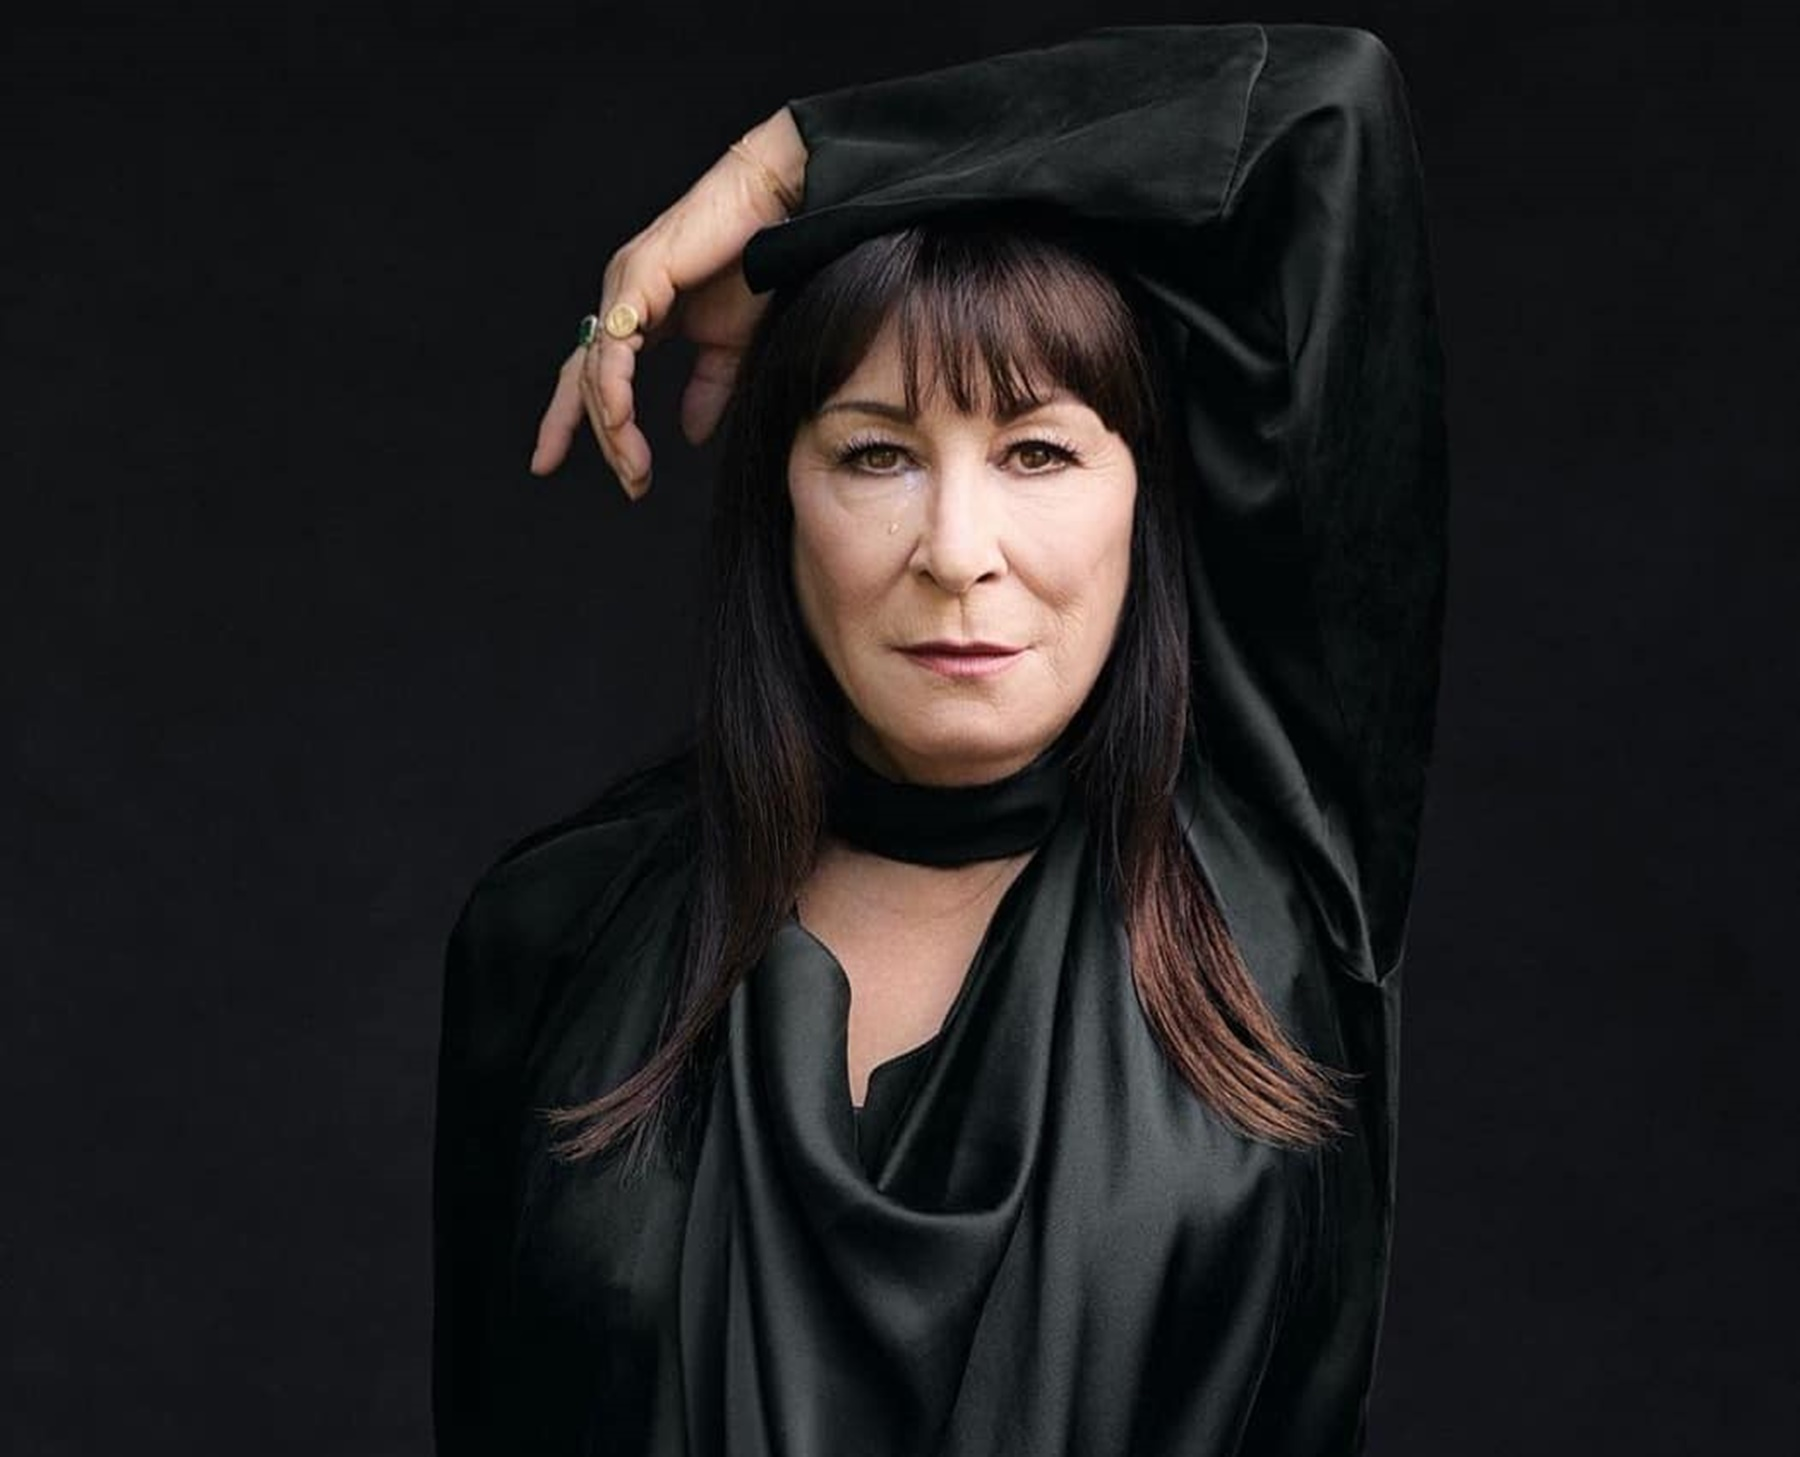 anjelica-huston-thrashes-diane-keaton-robert-de-niro-and-oprah-winfrey-critics-see-her-as-a-whiner